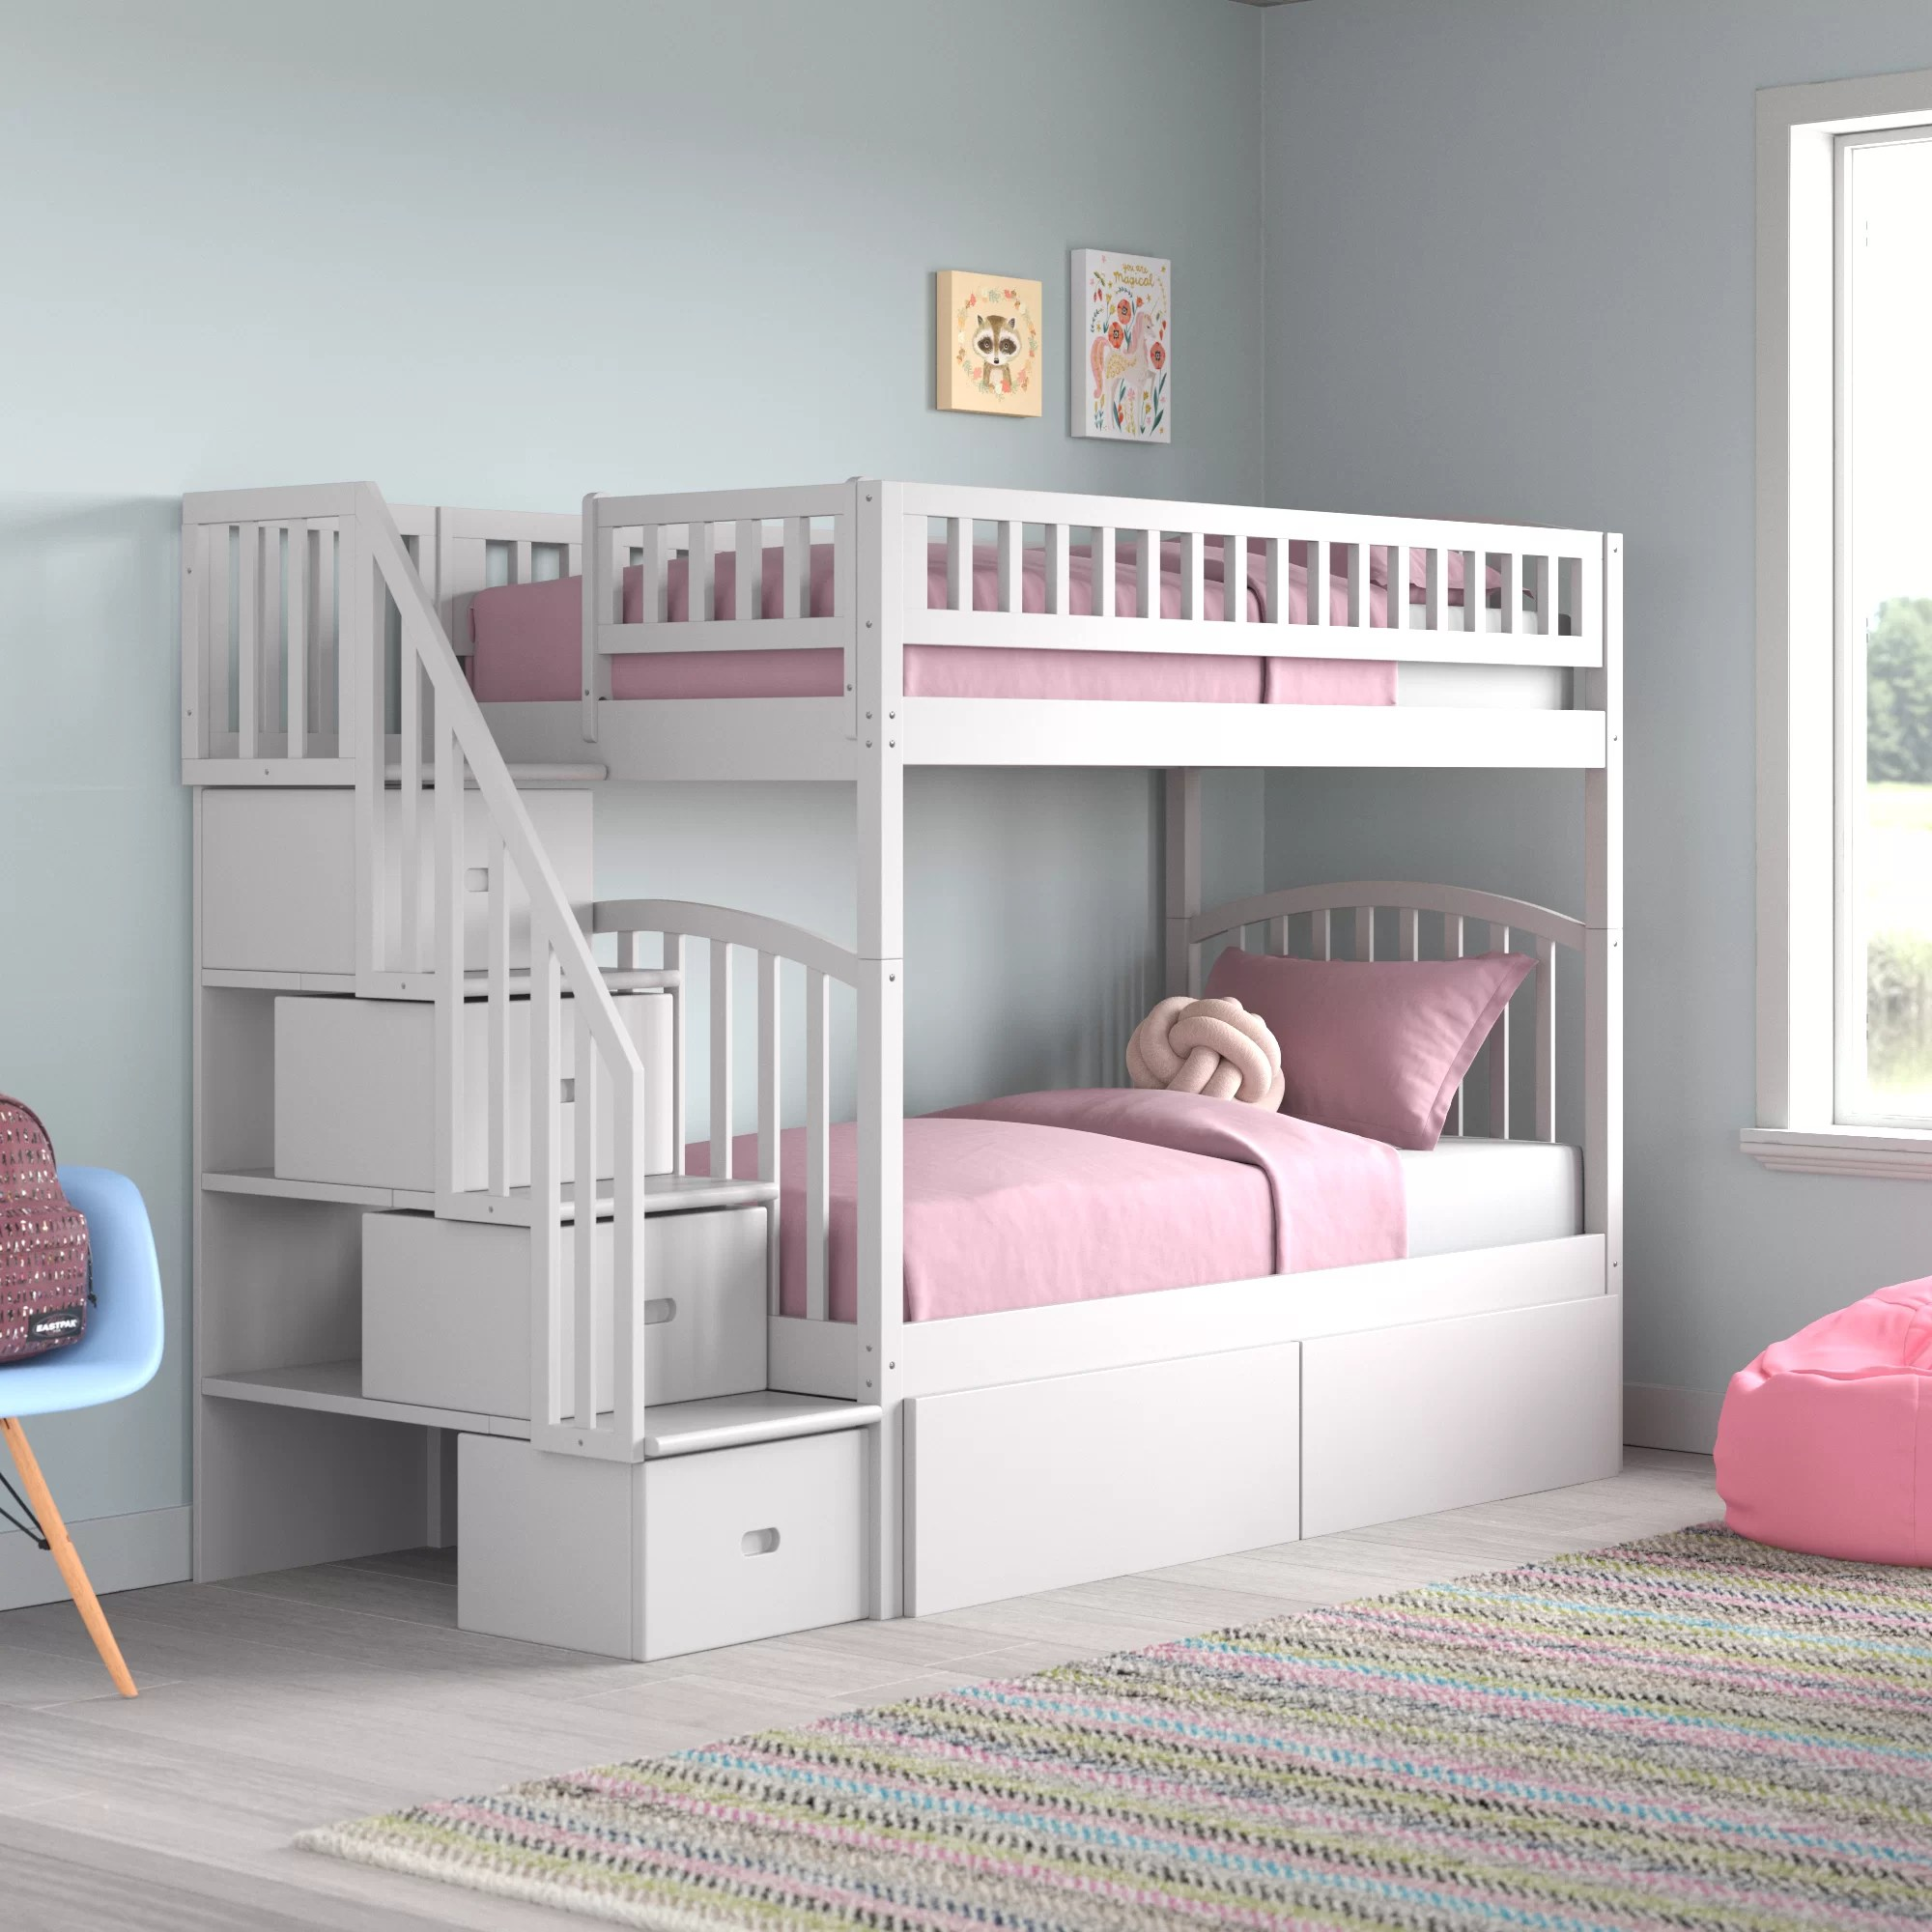 Harriet Bee Salem Staircase Twin Over Twin Bunk Bed With Drawers Reviews